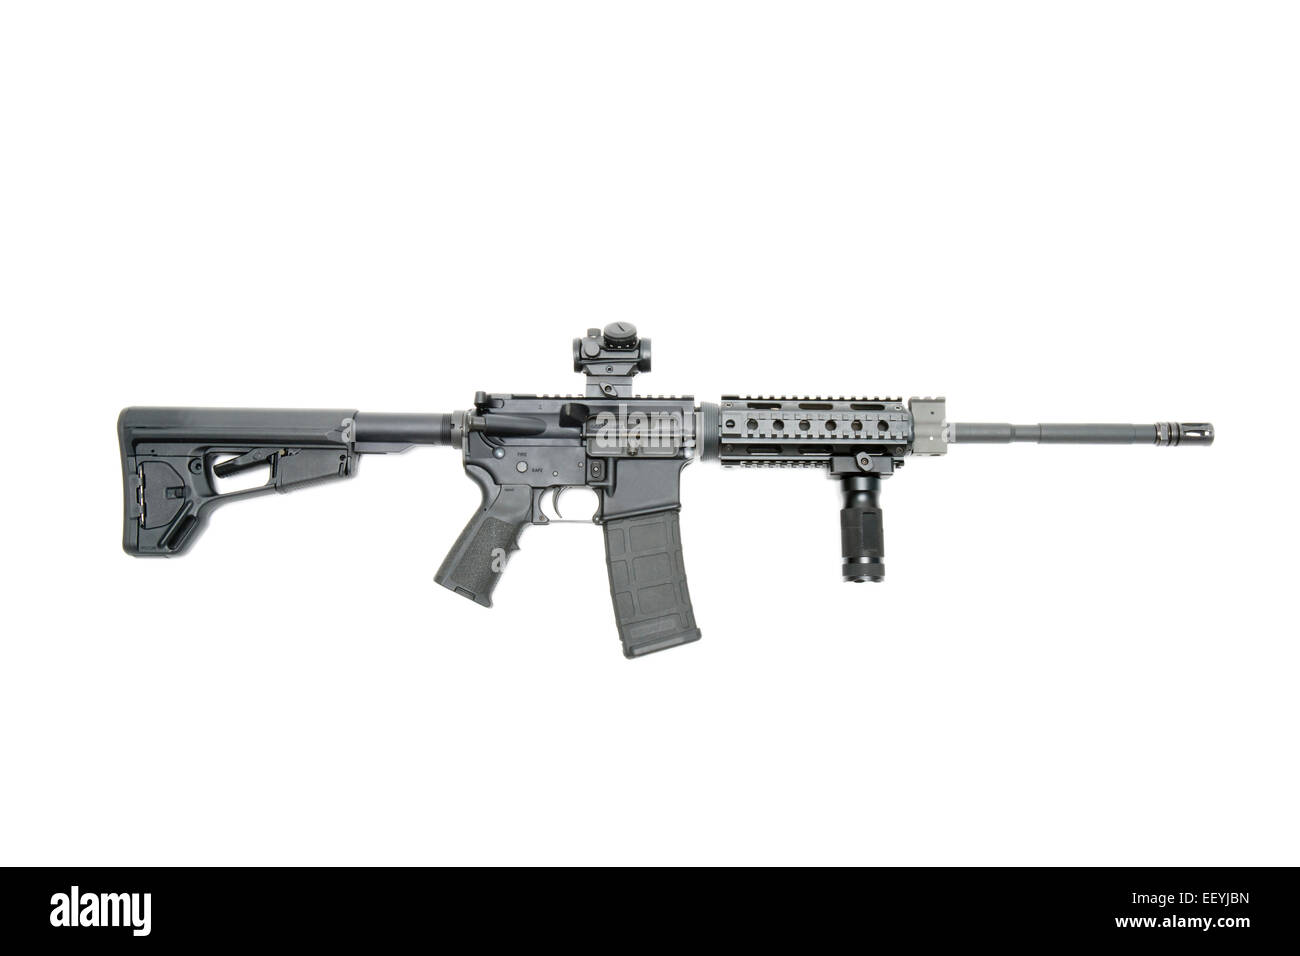 AR15 tactical rifle - Stock Image